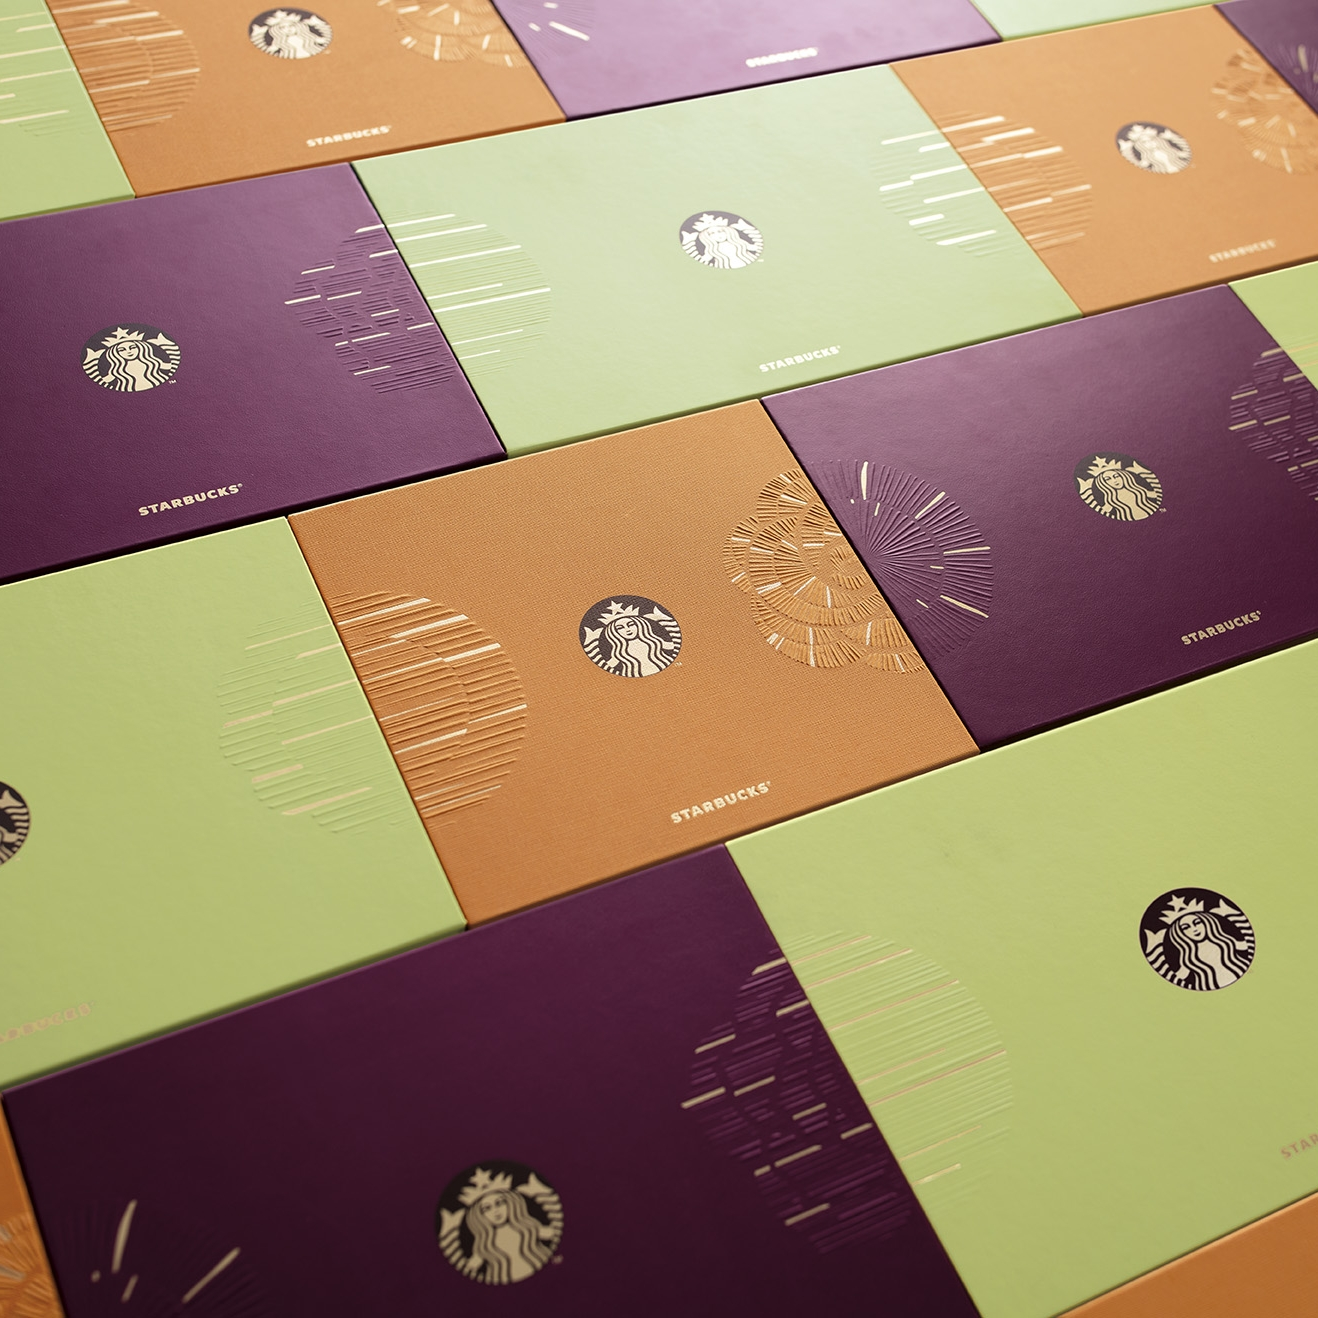 starbucks-package-design-awards-finalist